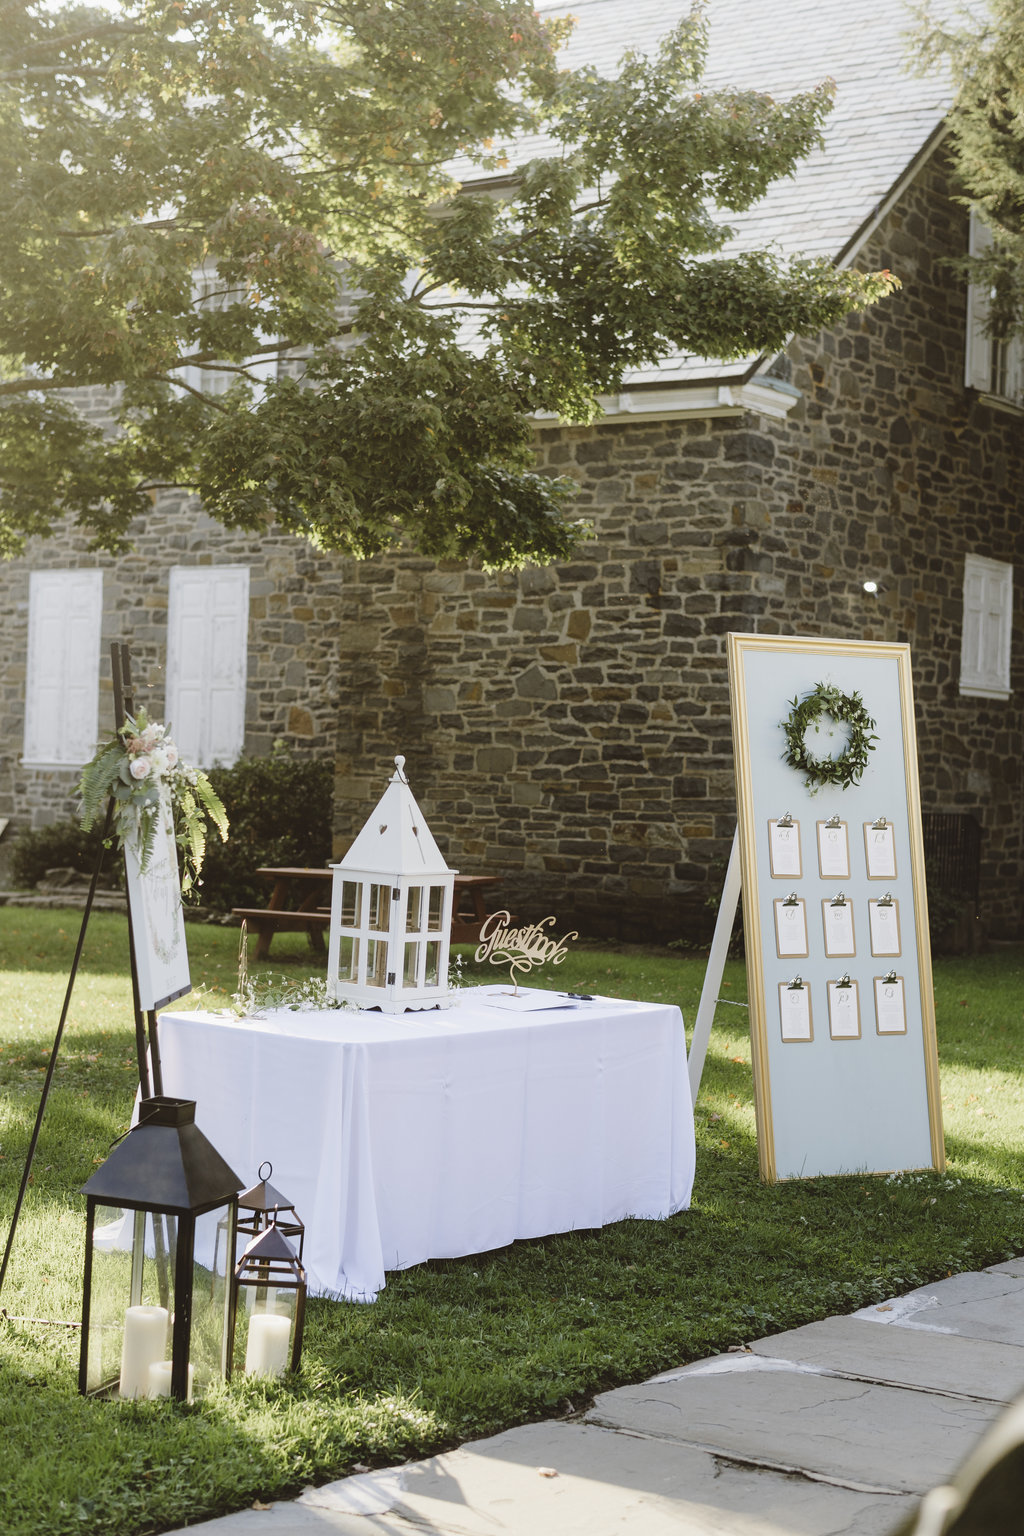 Coppola Creative Wedding Design _ Alicia King Photo26.jpg